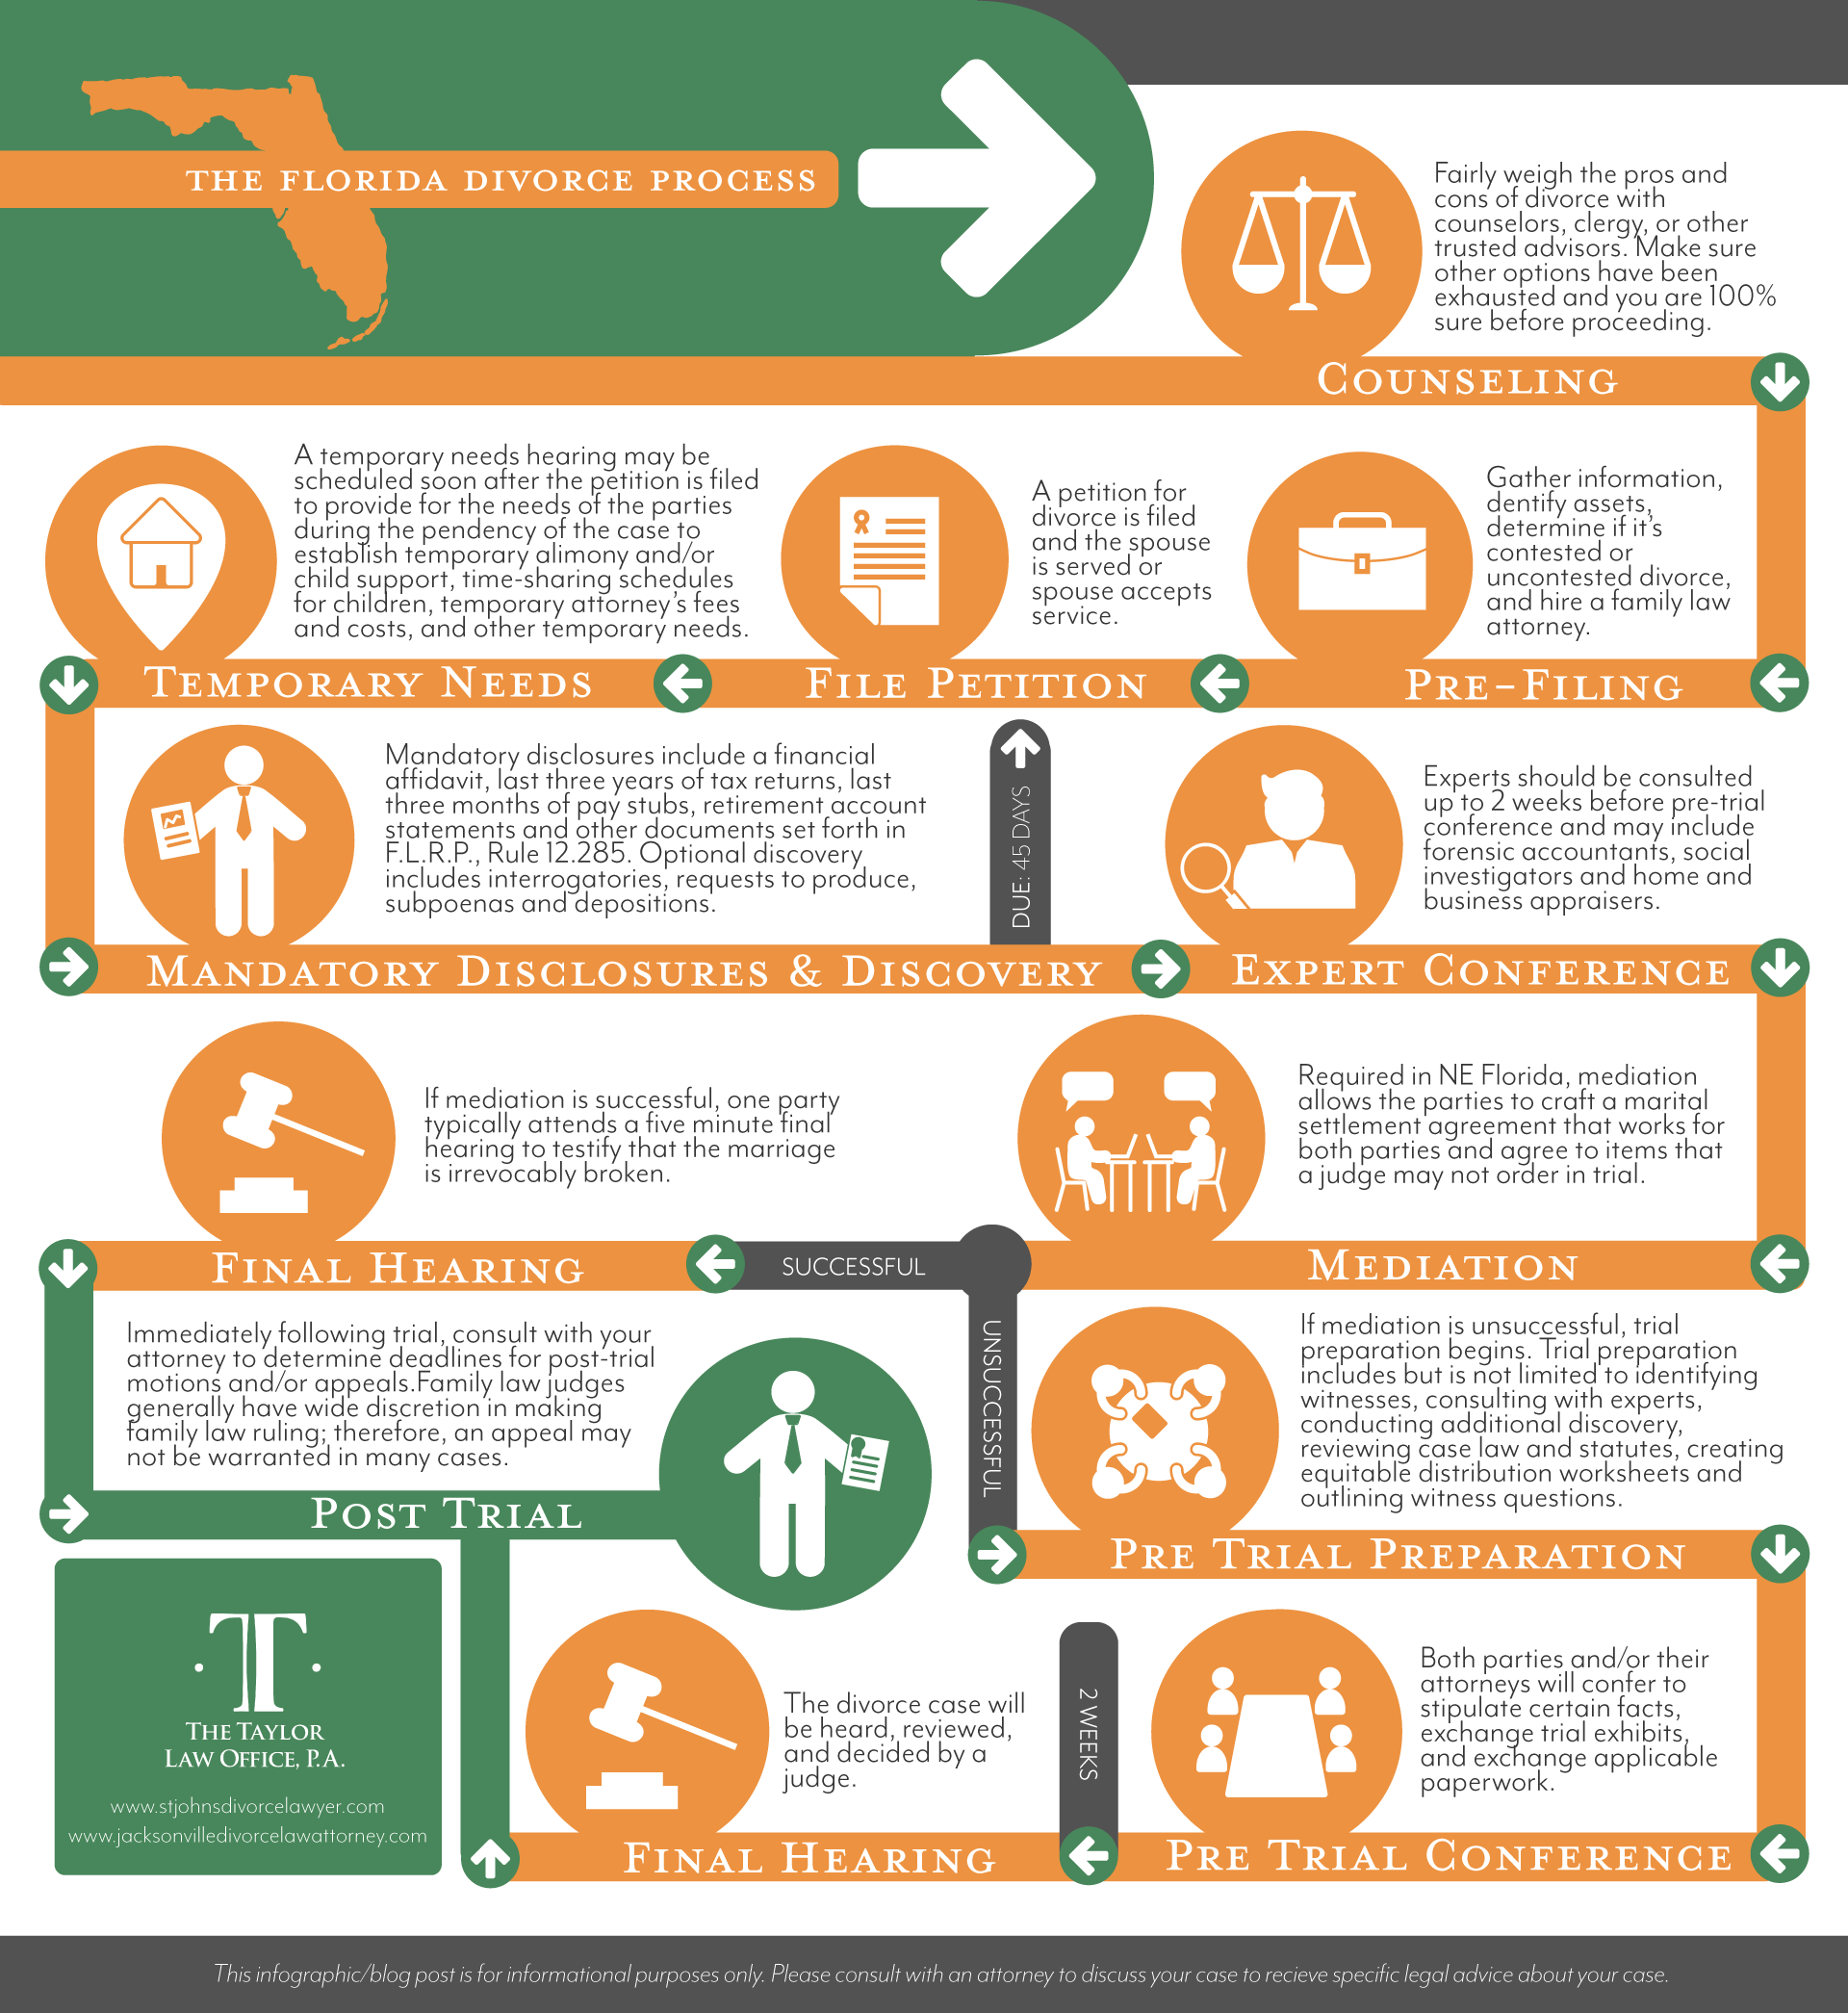 The Florida Divorce Process Infographic And In Depth Outline